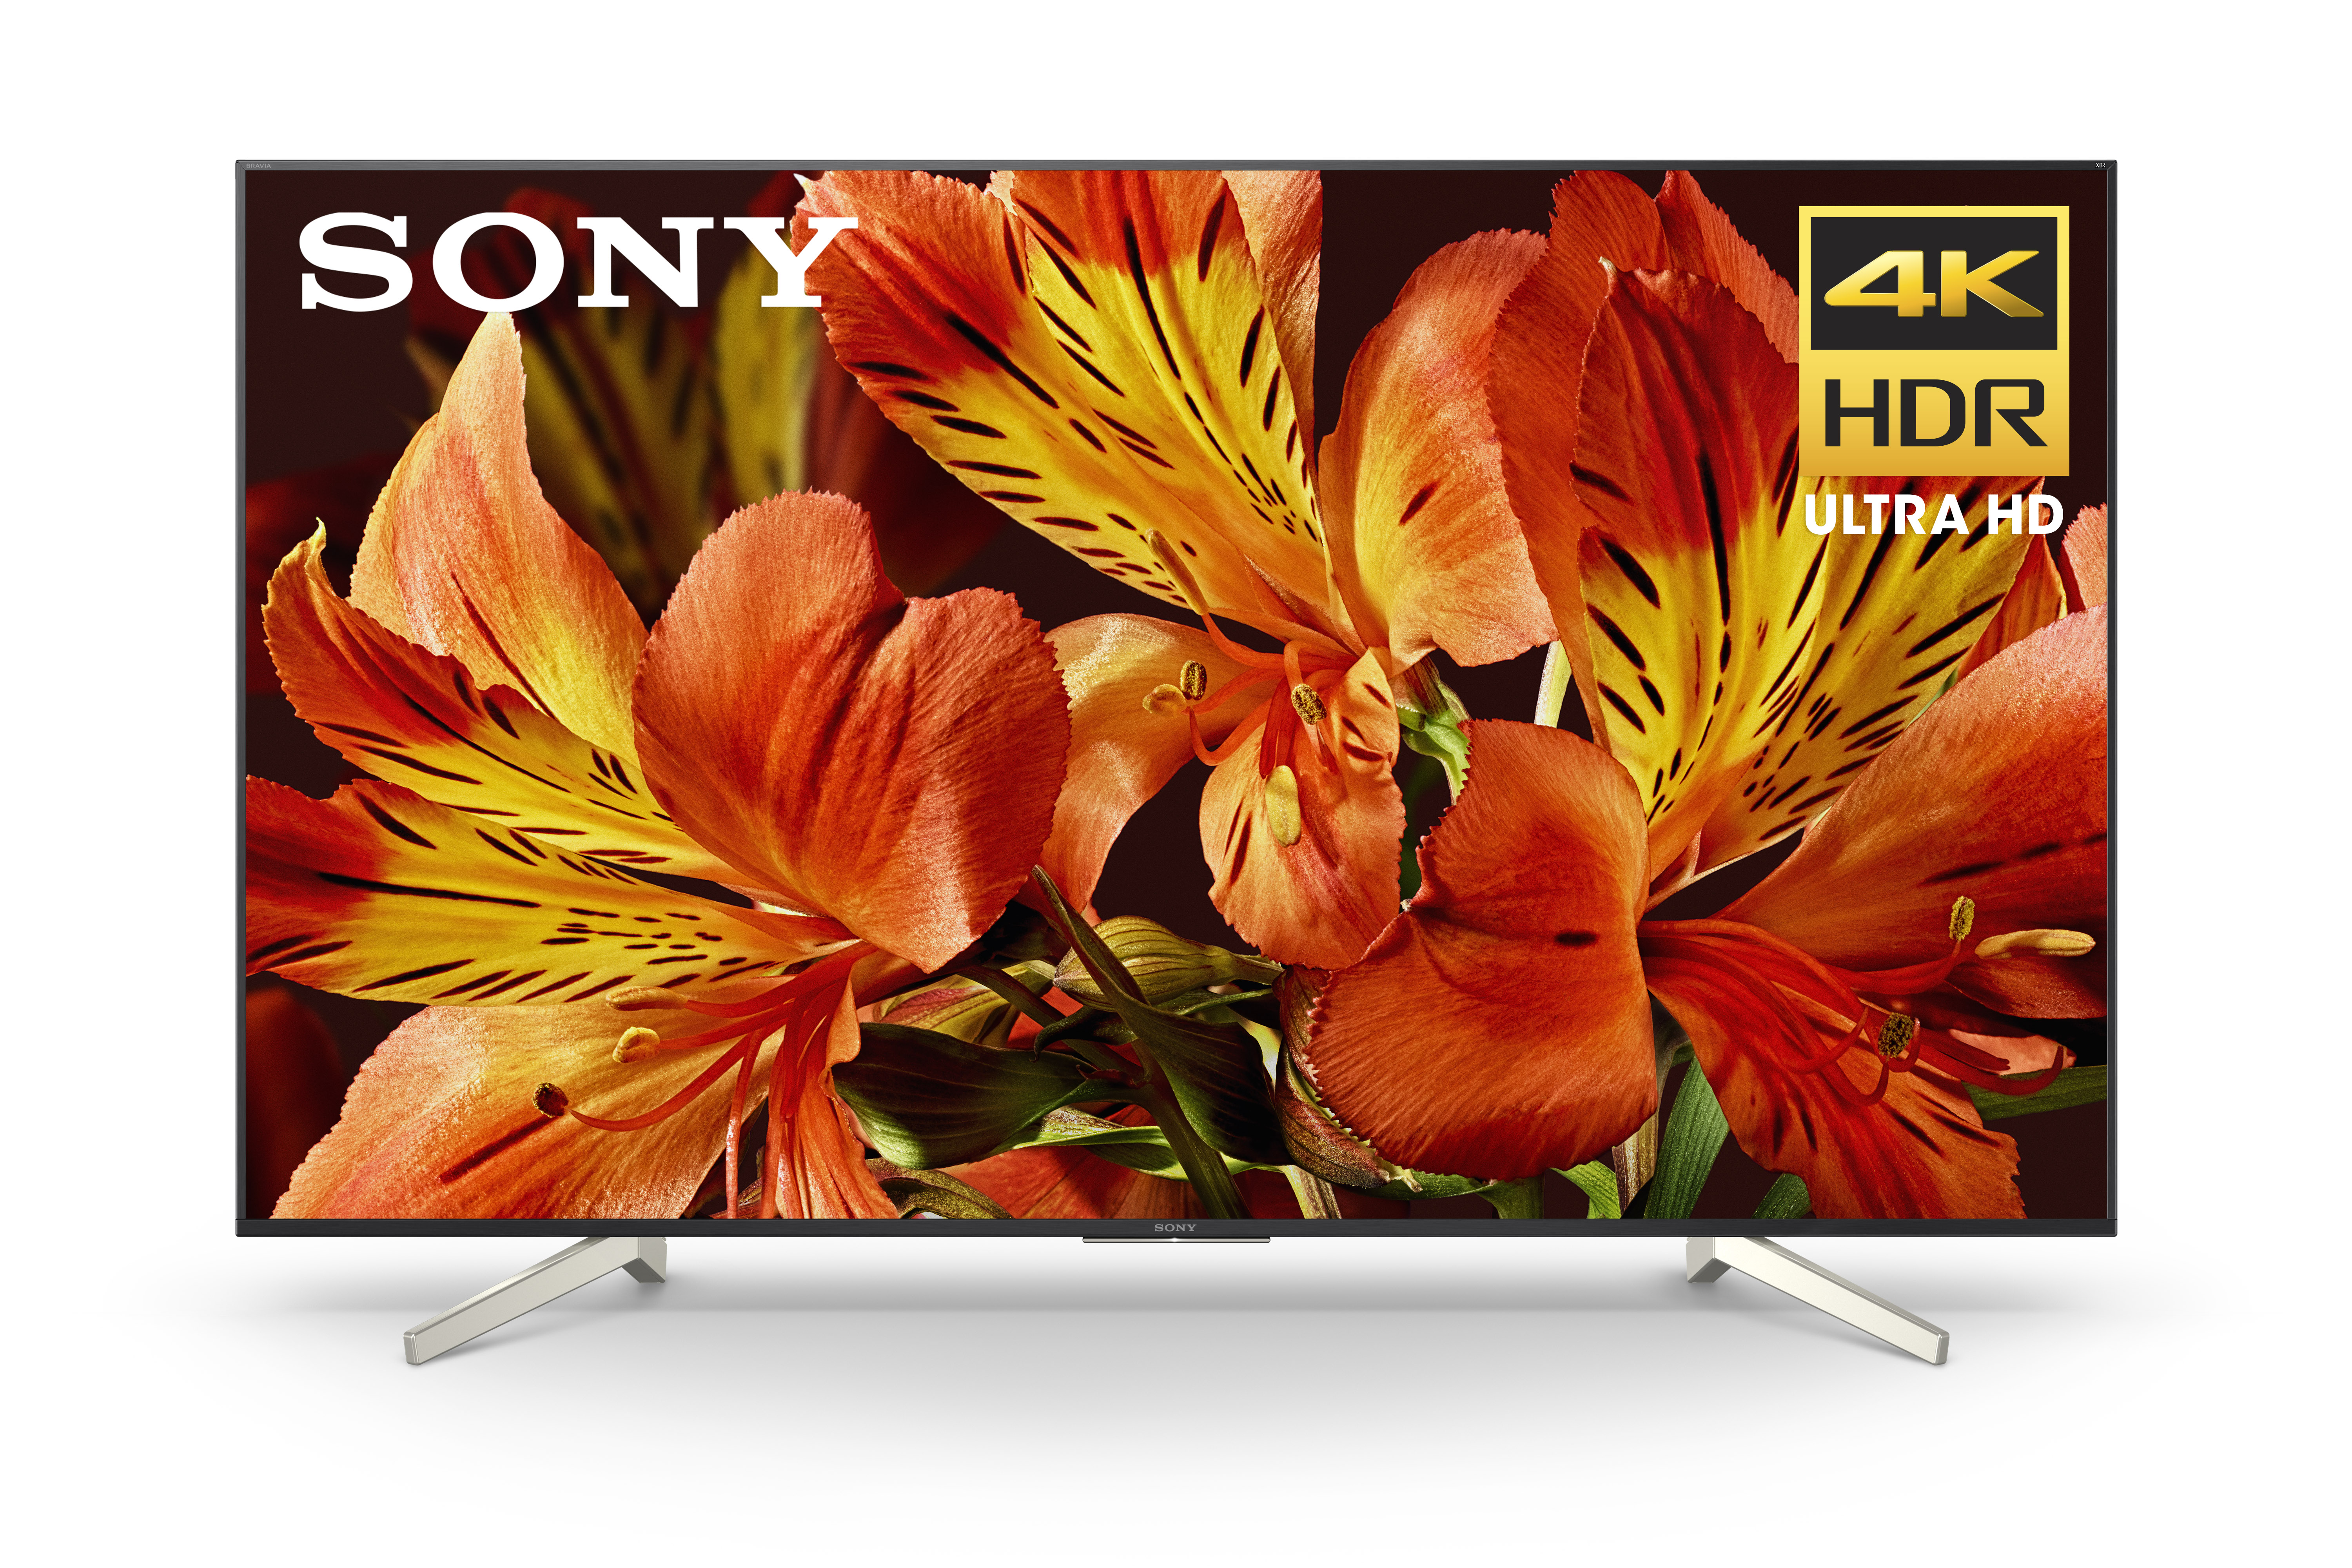 Sony XBR65X850F Series 4K ULTRA HD Direct Lit TV with X1 Processor